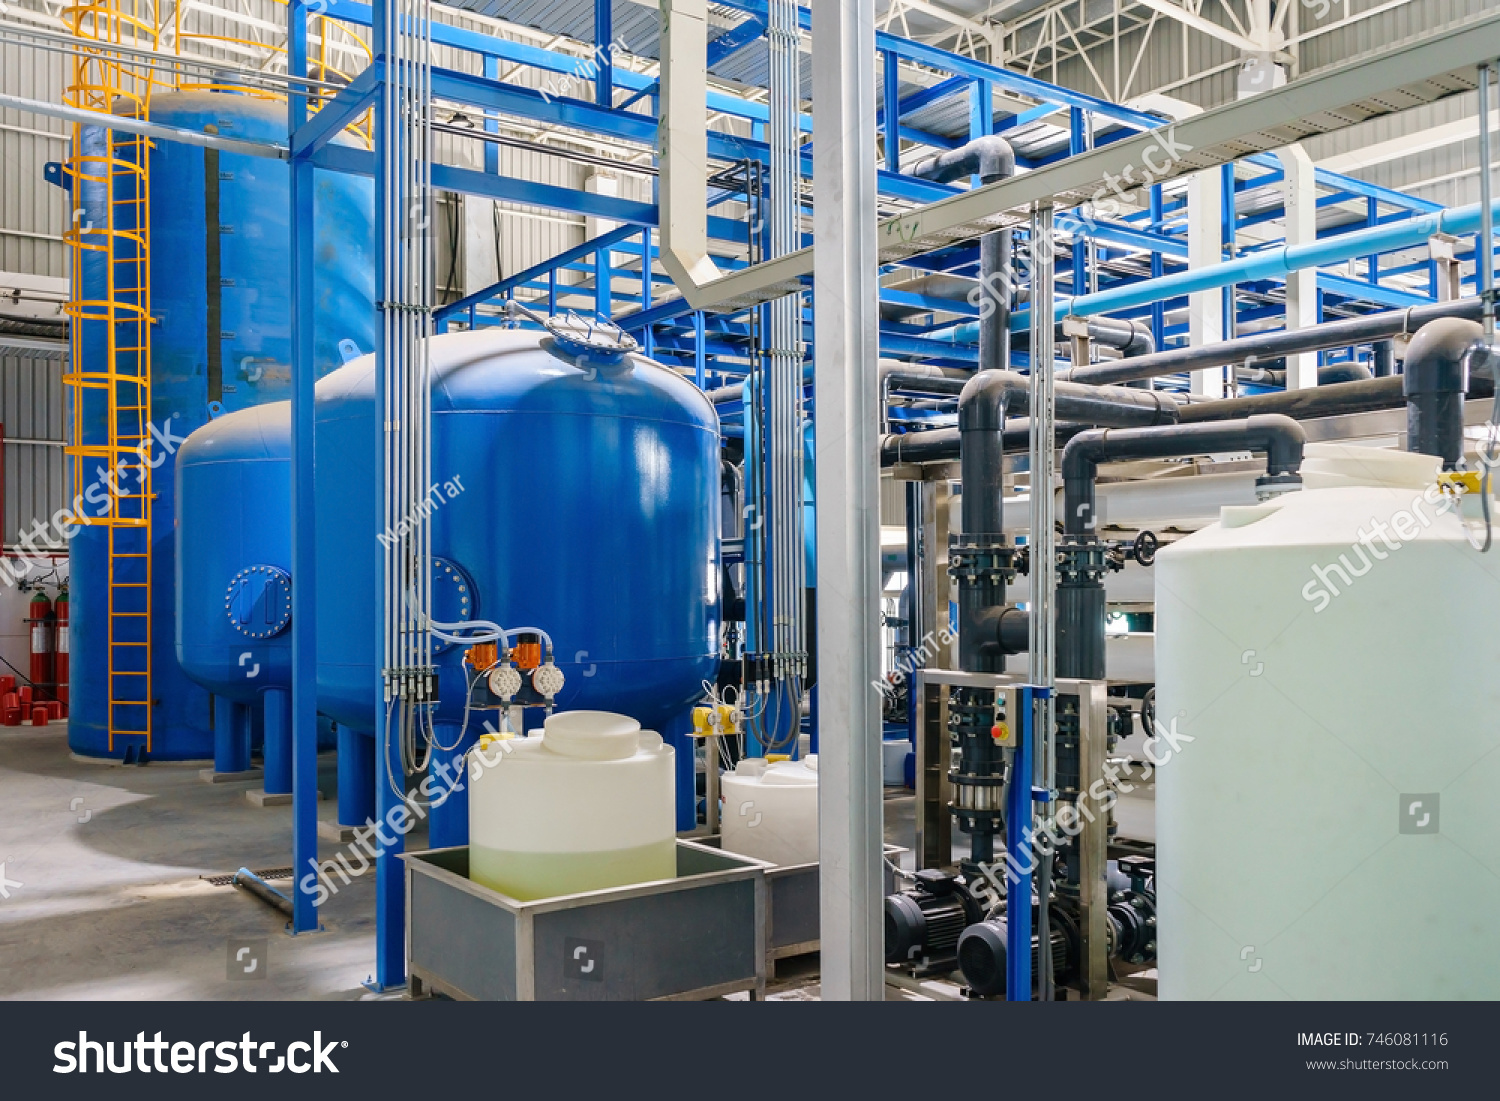 Large Industrial Water Treatment Boiler Room Stock Photo (Edit Now ...